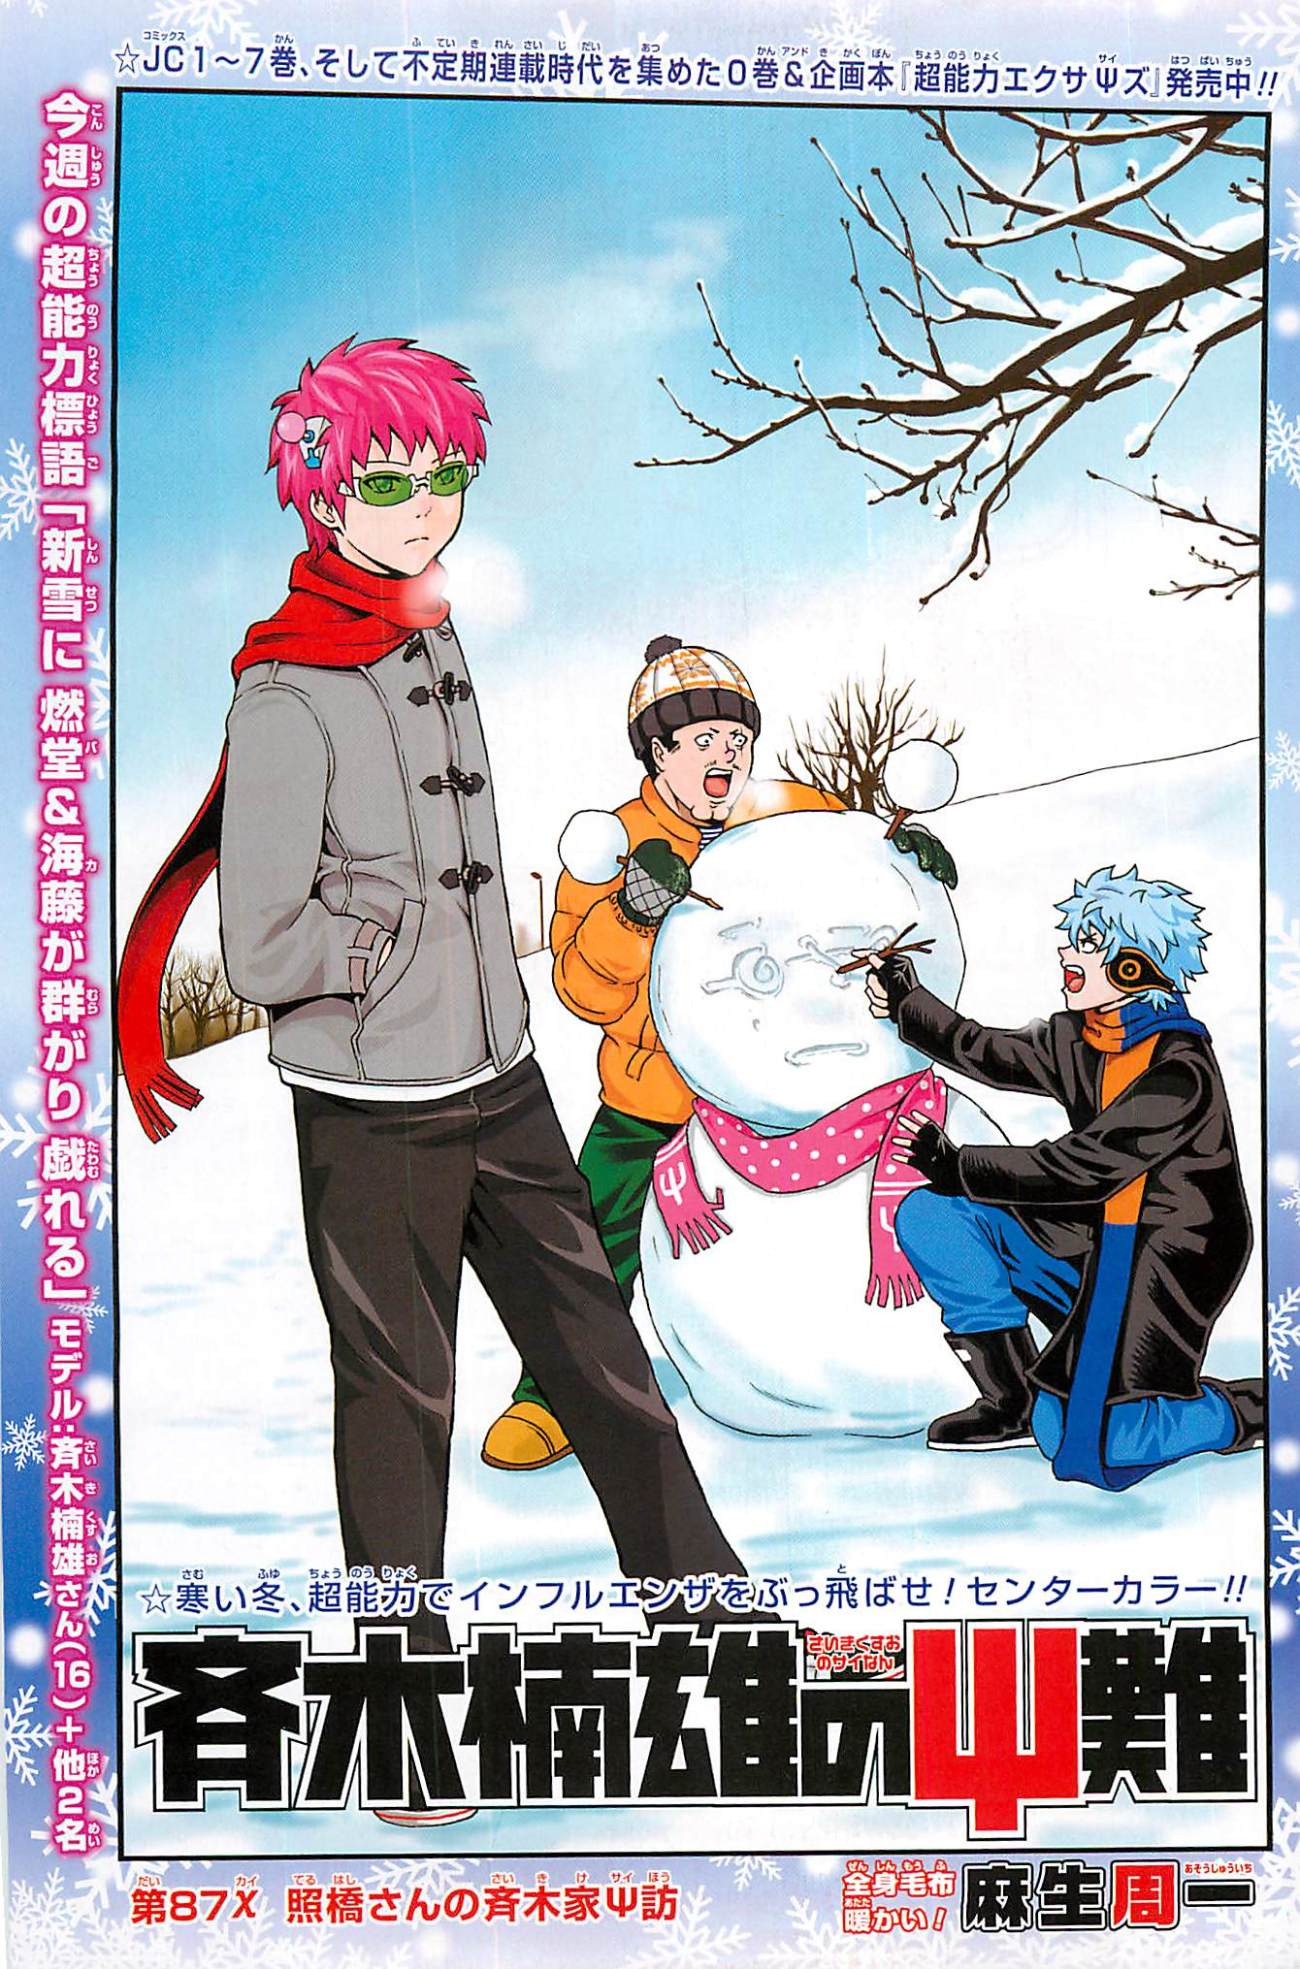 PSI Weekly Shonen Jump 12 2014 Page couleur